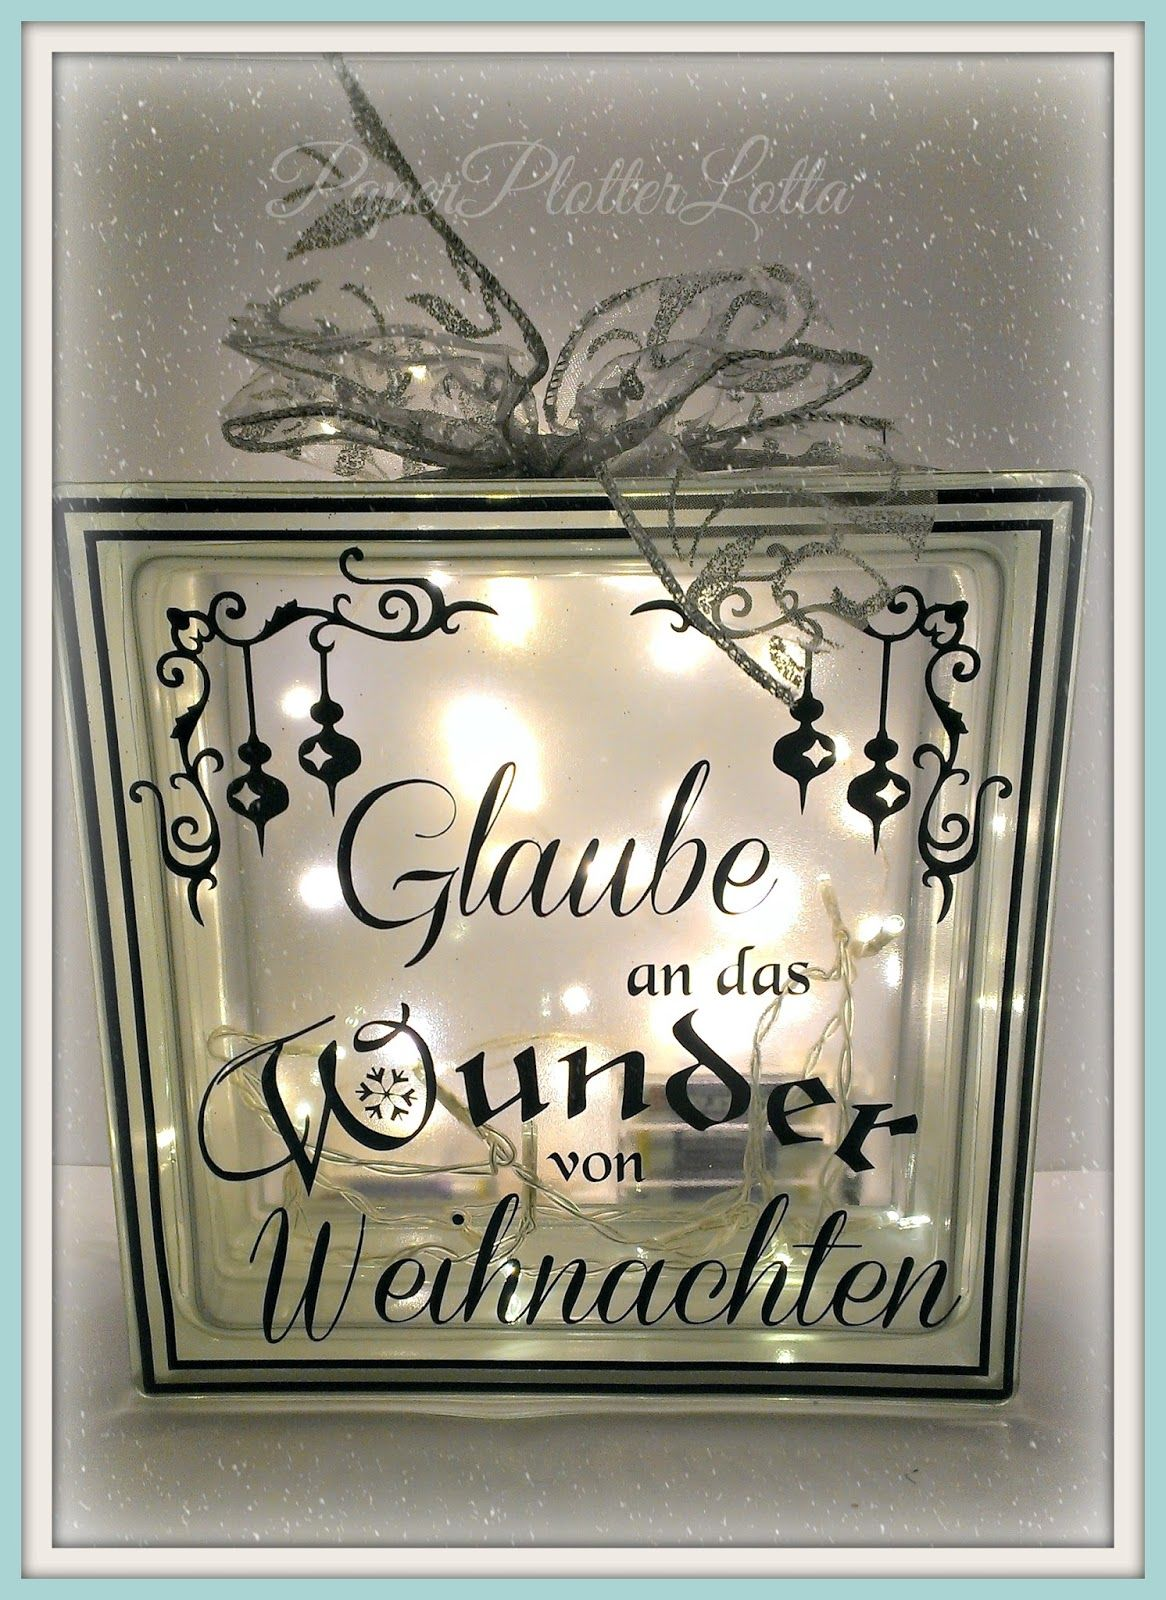 paperplotterlottas craftchaos beleuchteter glasbaustein mit weihnachts spruch querbeet. Black Bedroom Furniture Sets. Home Design Ideas